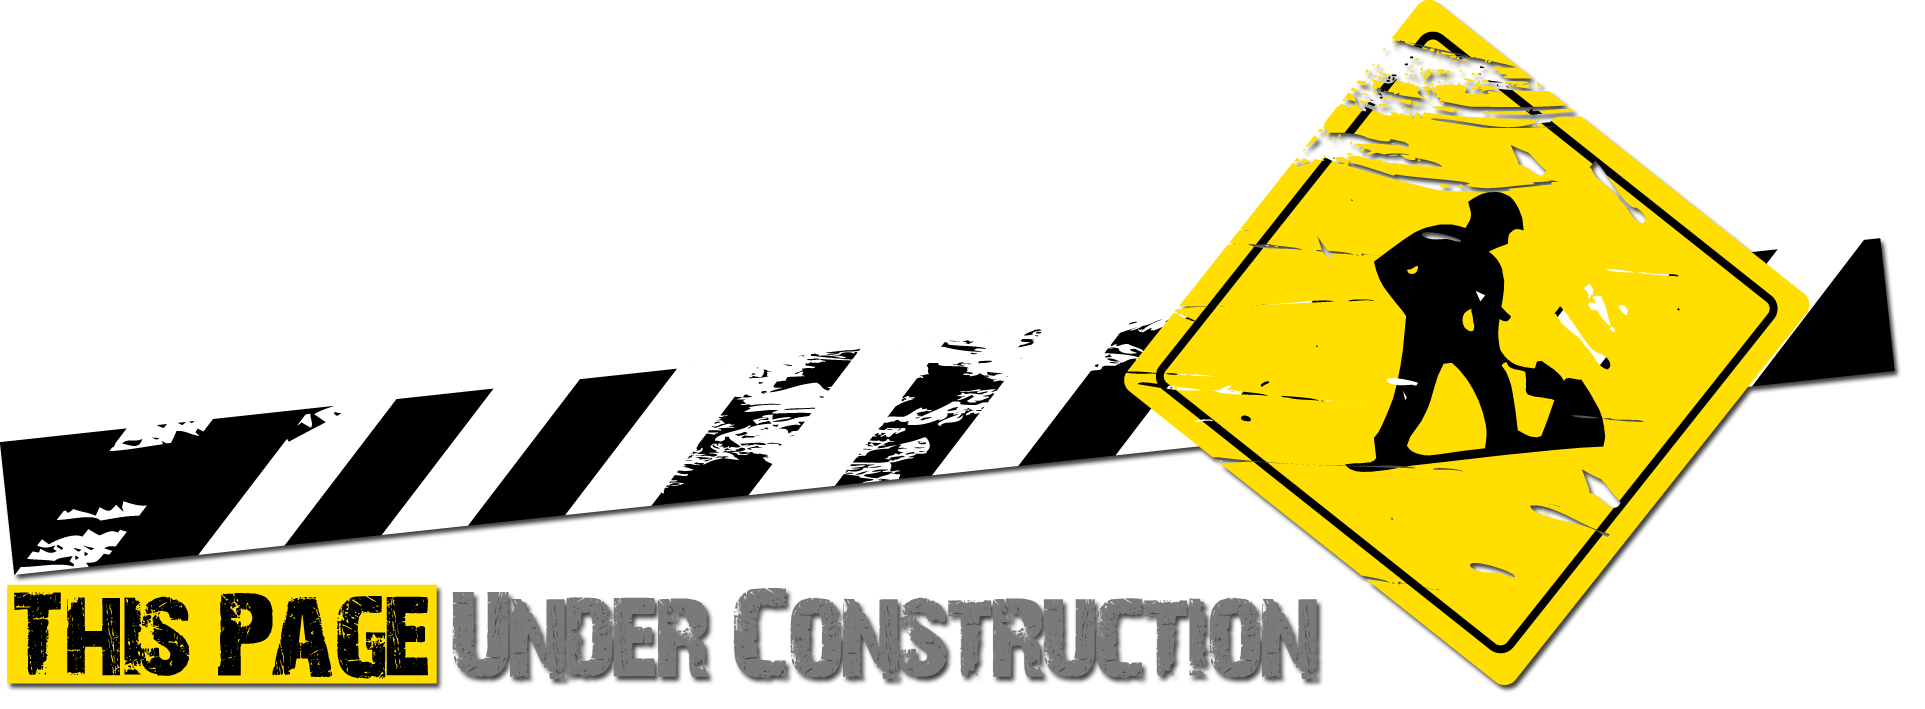 Under construction for Insurance for home under construction